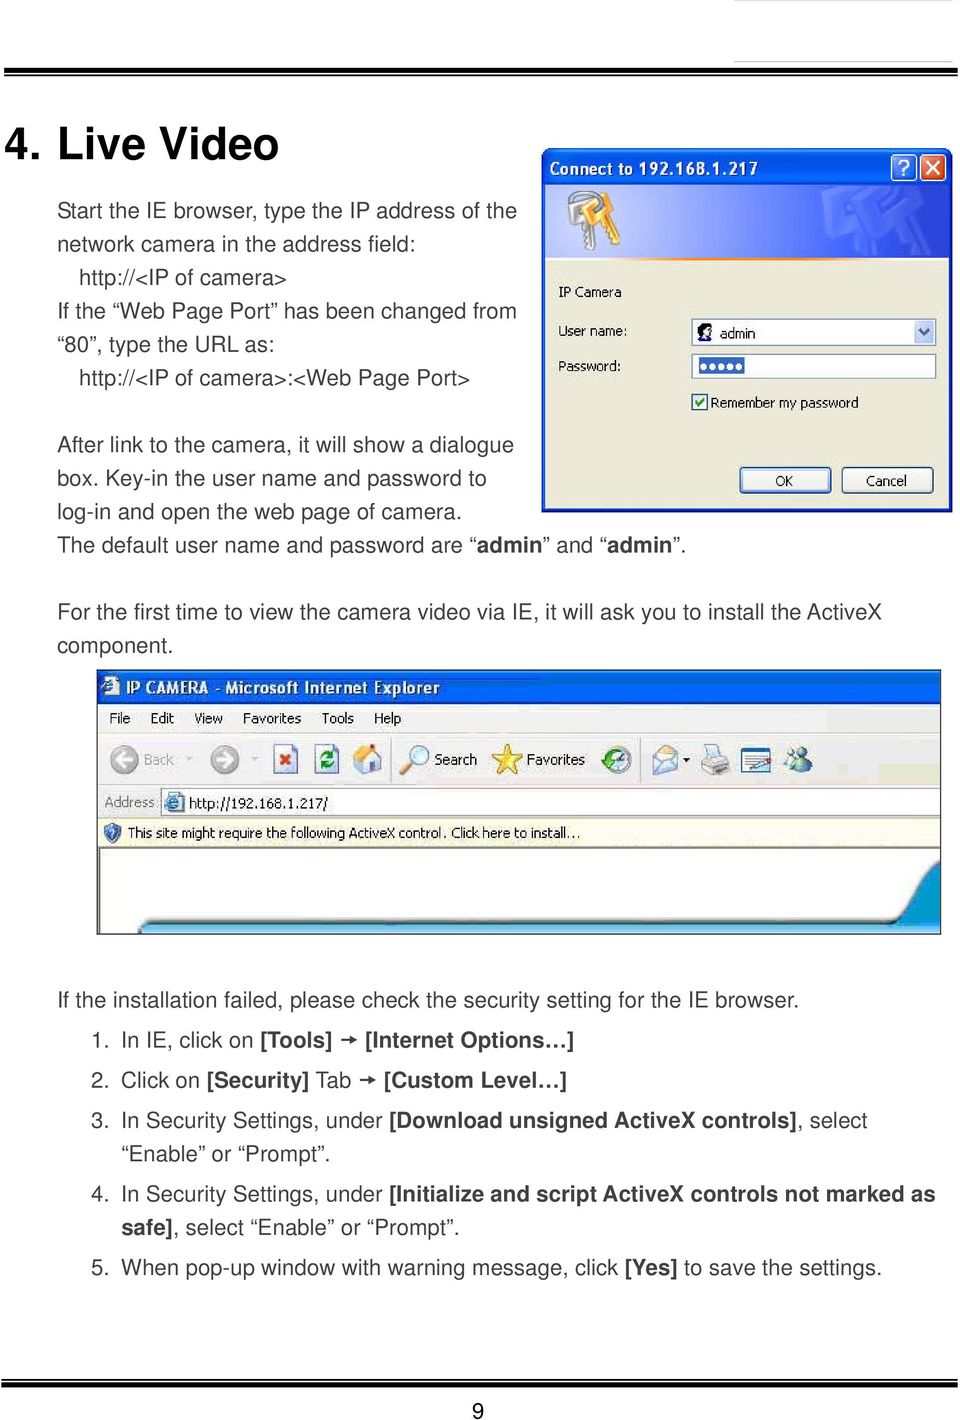 The default user name and password are admin and admin. For the first time to view the camera video via IE, it will ask you to install the ActiveX component.